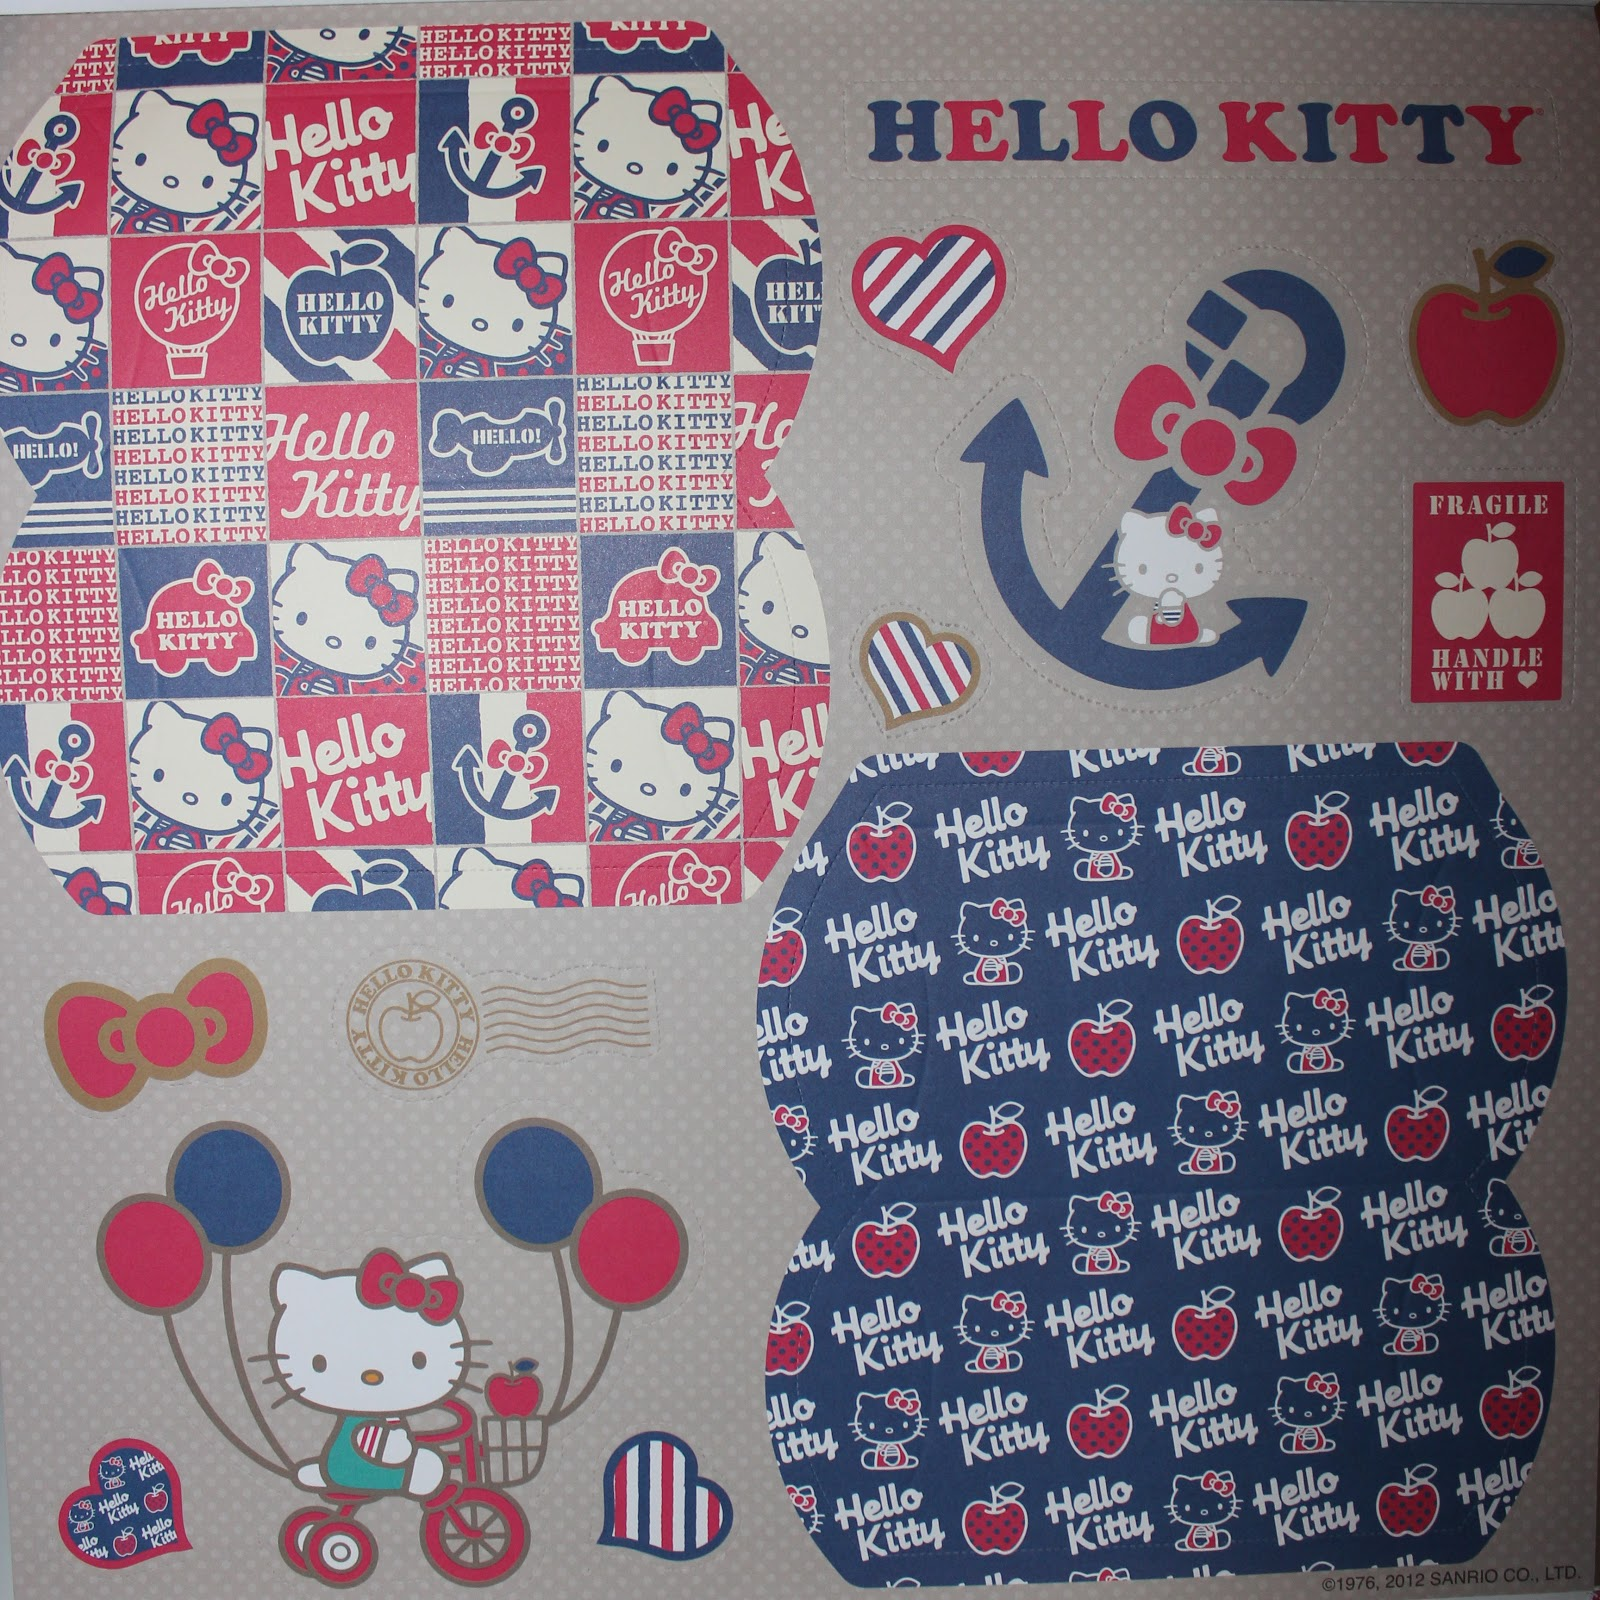 Styles By Stefani: Hello Kitty And 5 Cool Give Aways